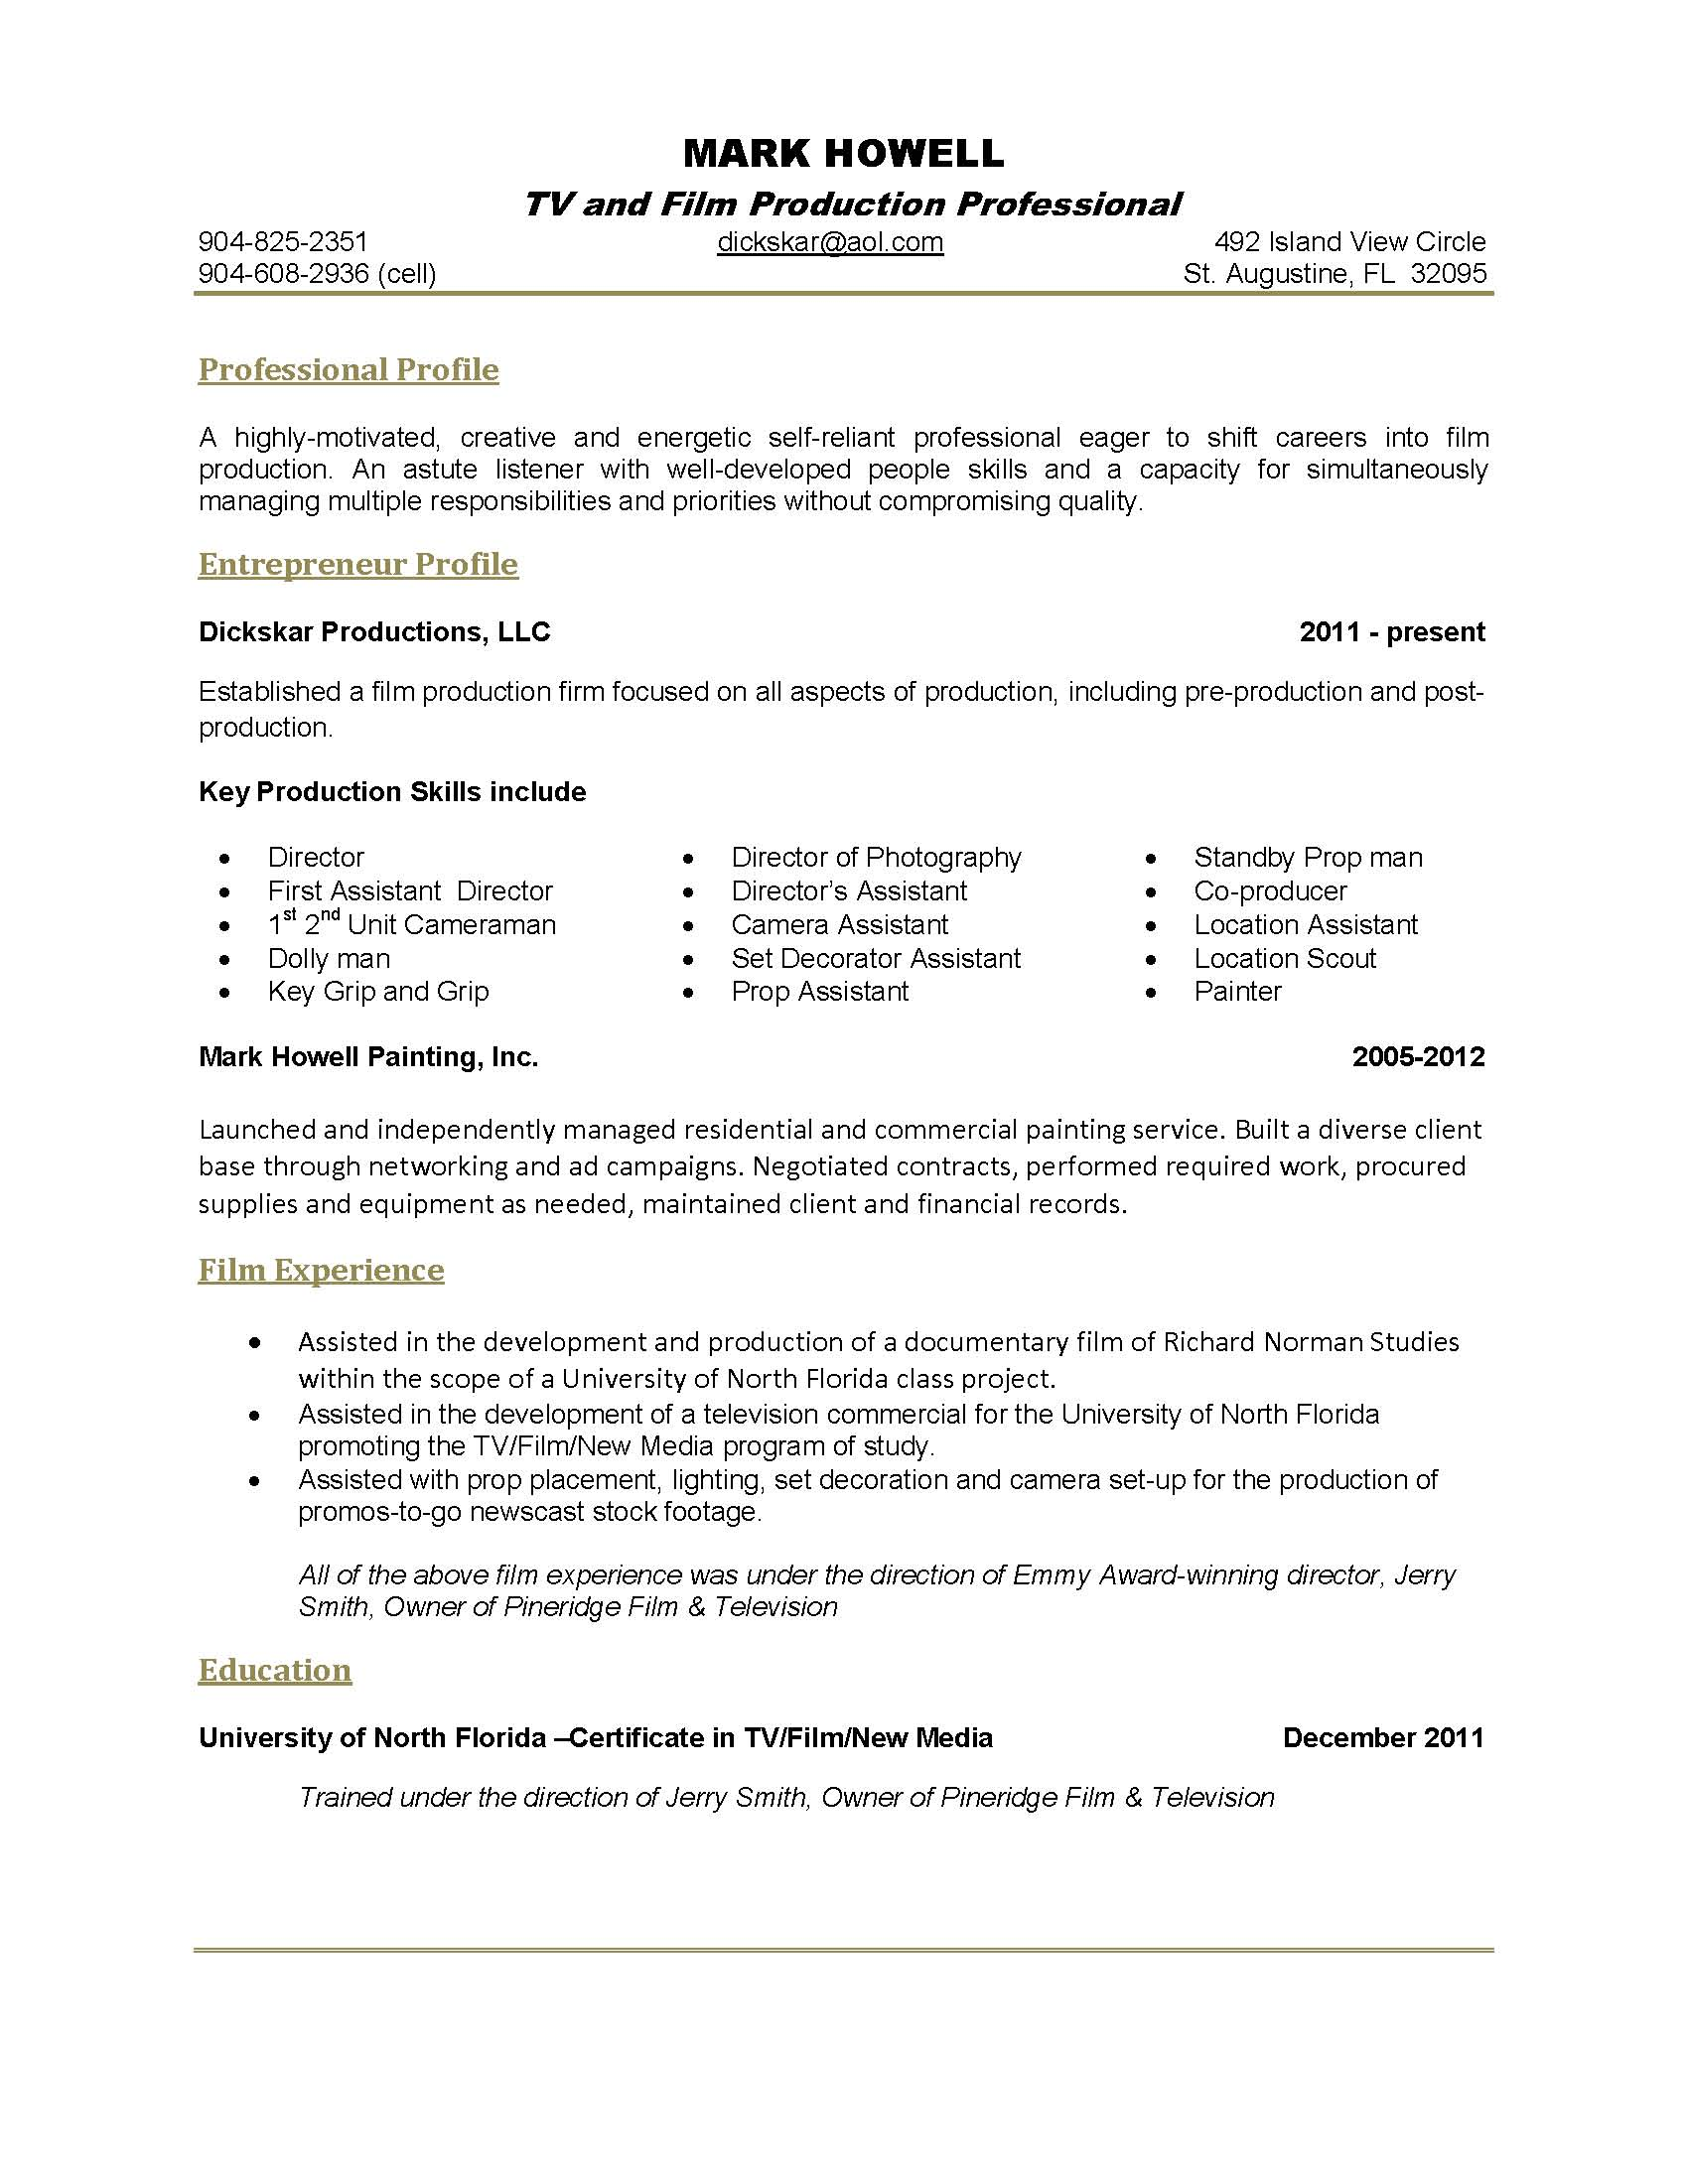 Download Resume Format Free 35 Resume Formats Techcybo Resume Tips Exploring Communication On All Levels